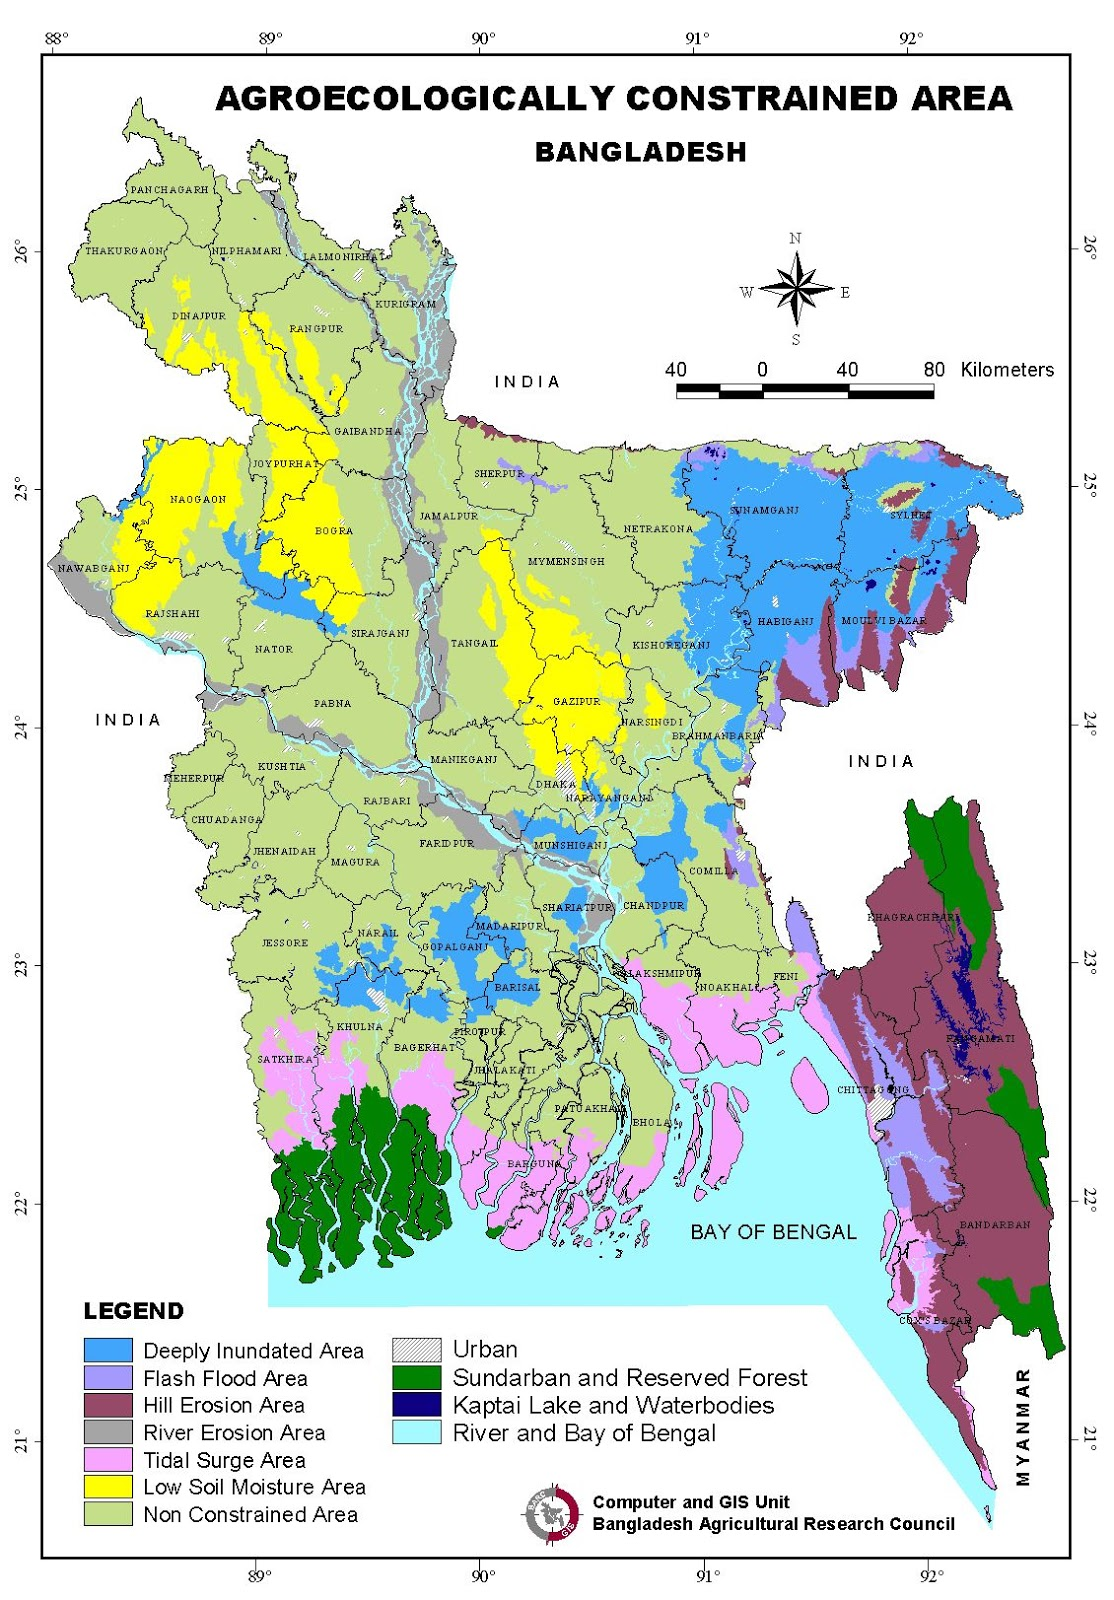 Agroecologically Constrained Areas Map Bangladesh